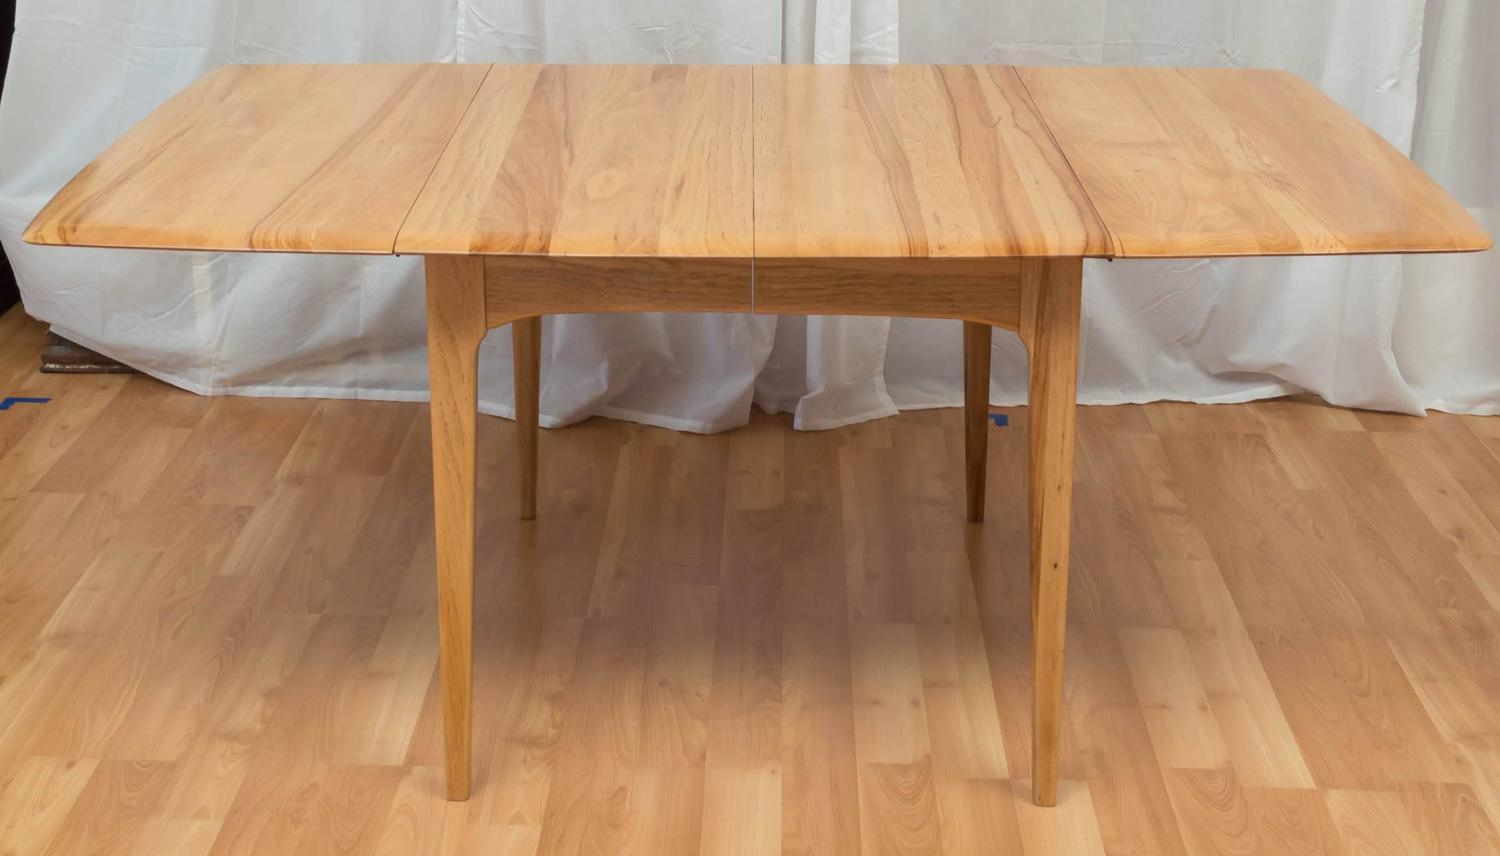 Hickory Dining Room Table Hickory Wood Drop Leaf Dining Table In The Manner Of Heywood